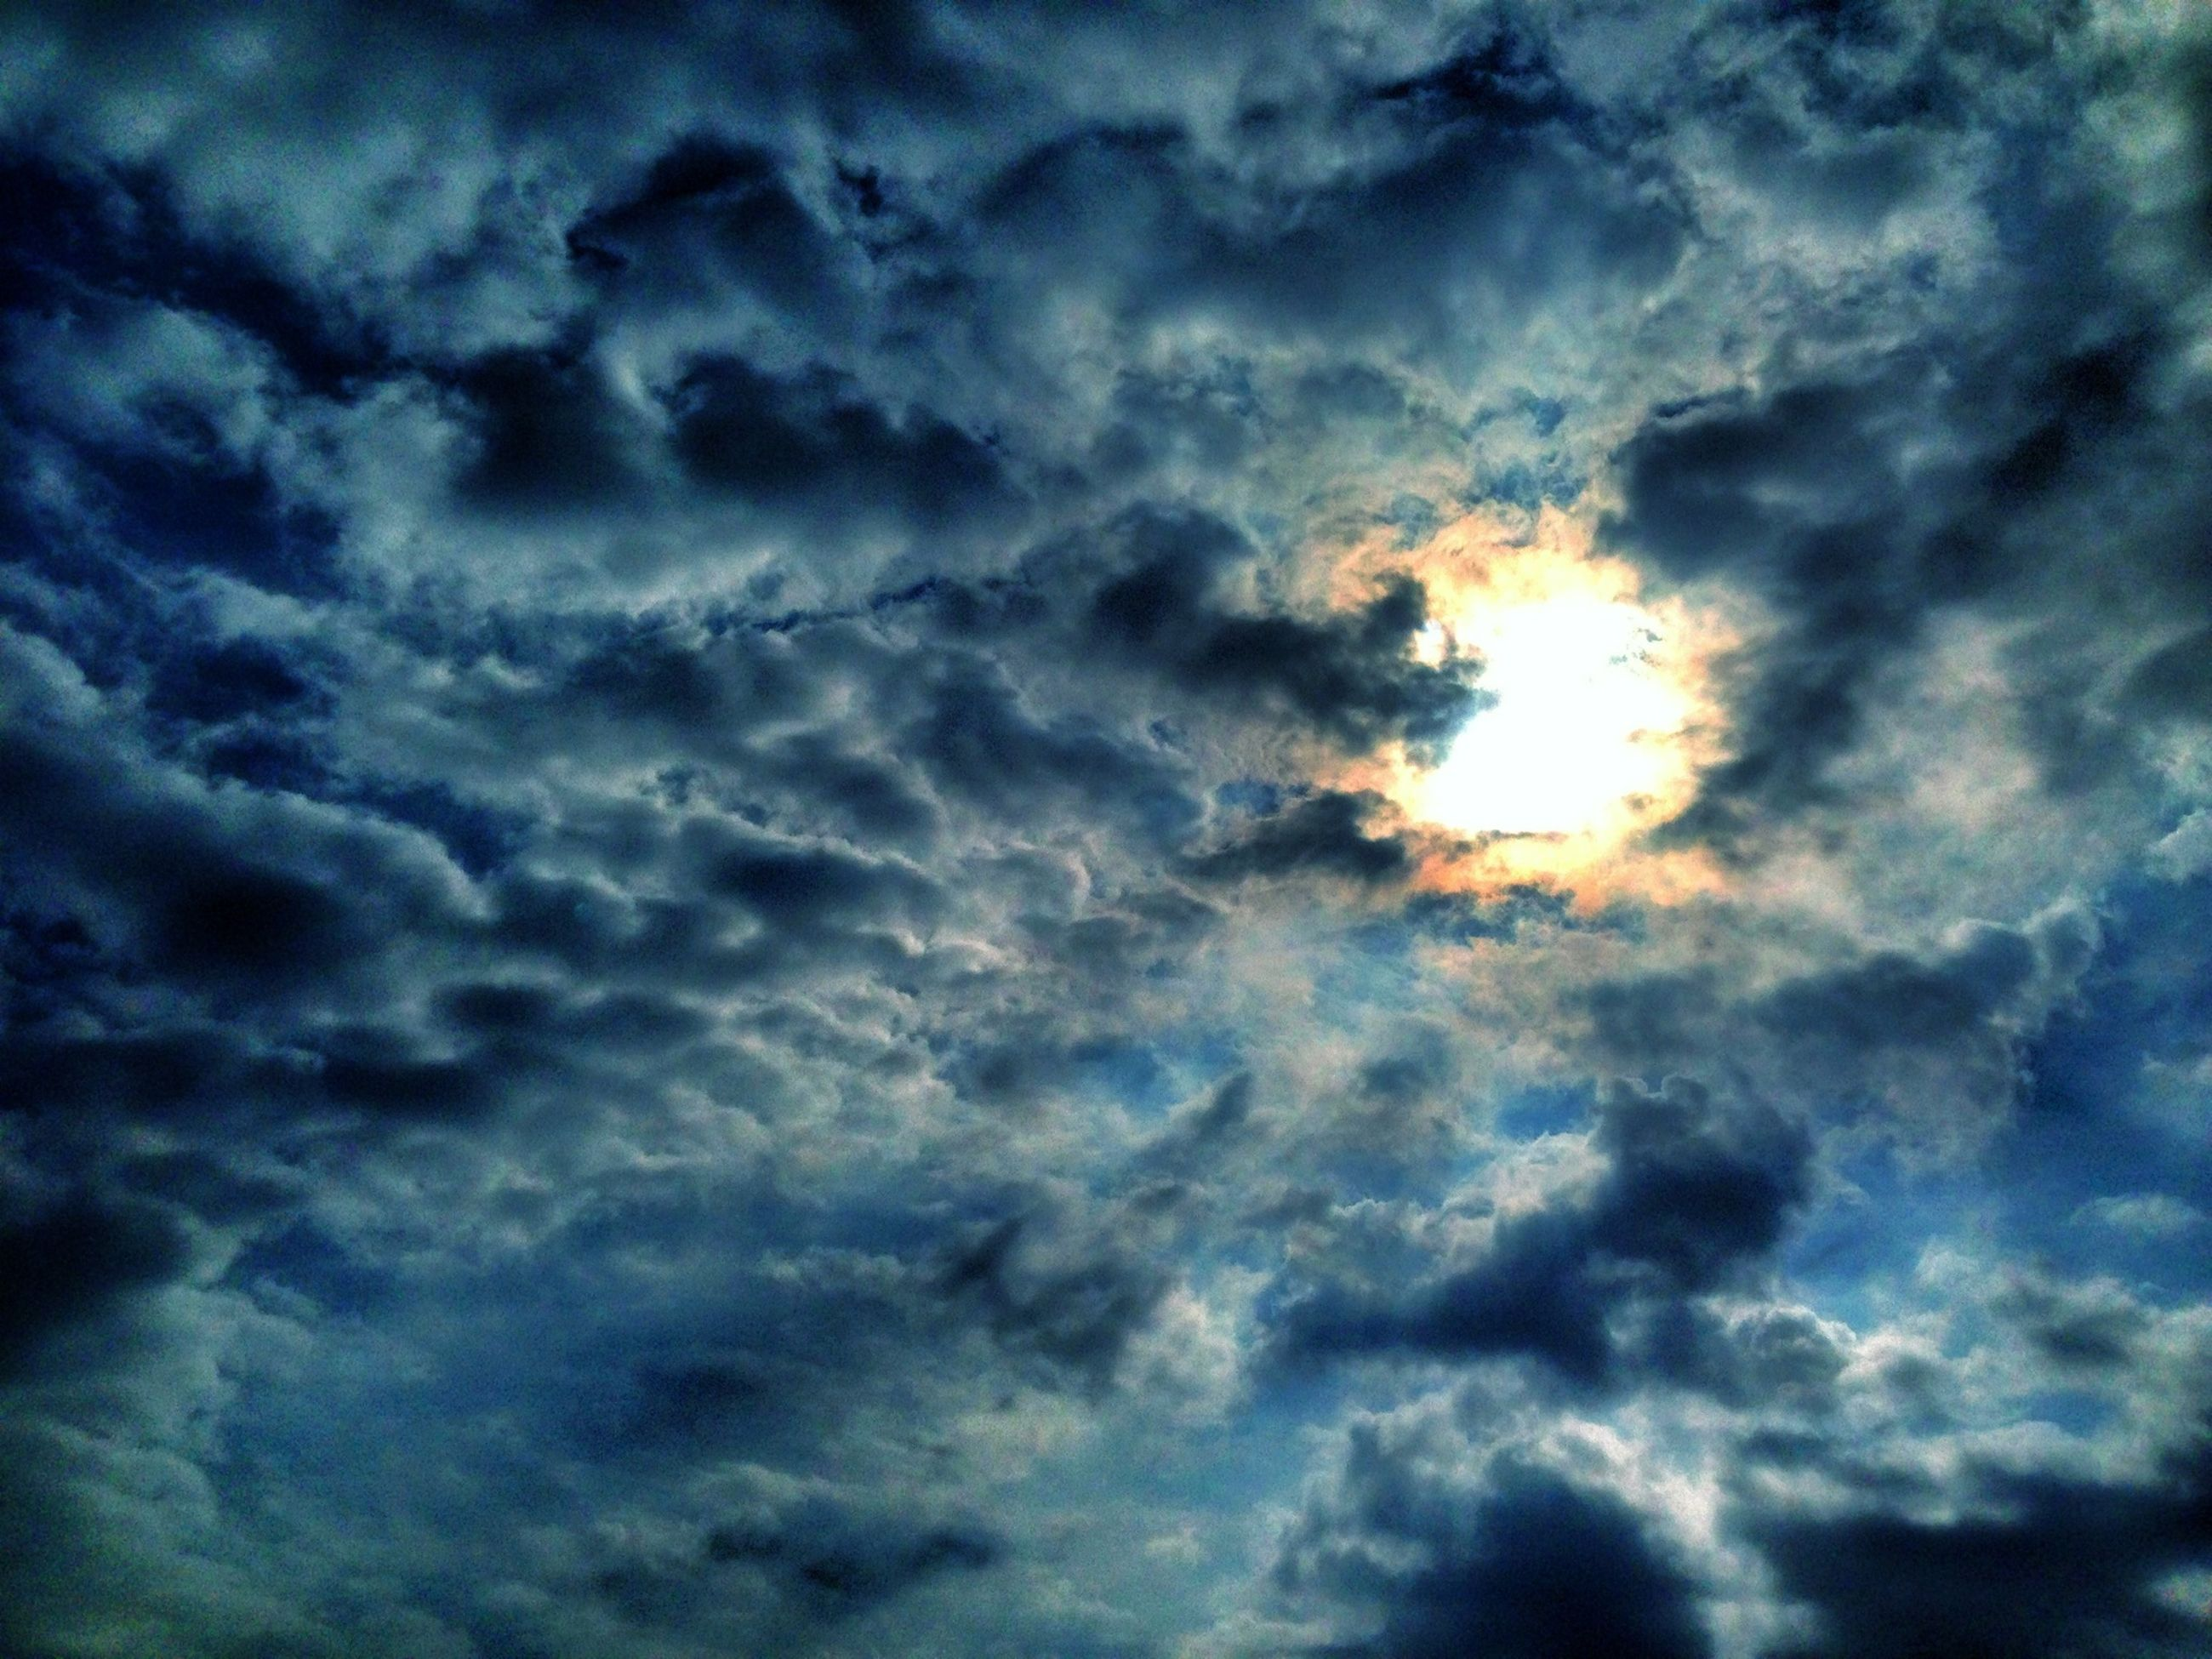 cloud - sky, sky, sky only, low angle view, cloudy, beauty in nature, cloudscape, scenics, tranquility, nature, tranquil scene, backgrounds, weather, sunset, dramatic sky, full frame, cloud, idyllic, overcast, majestic